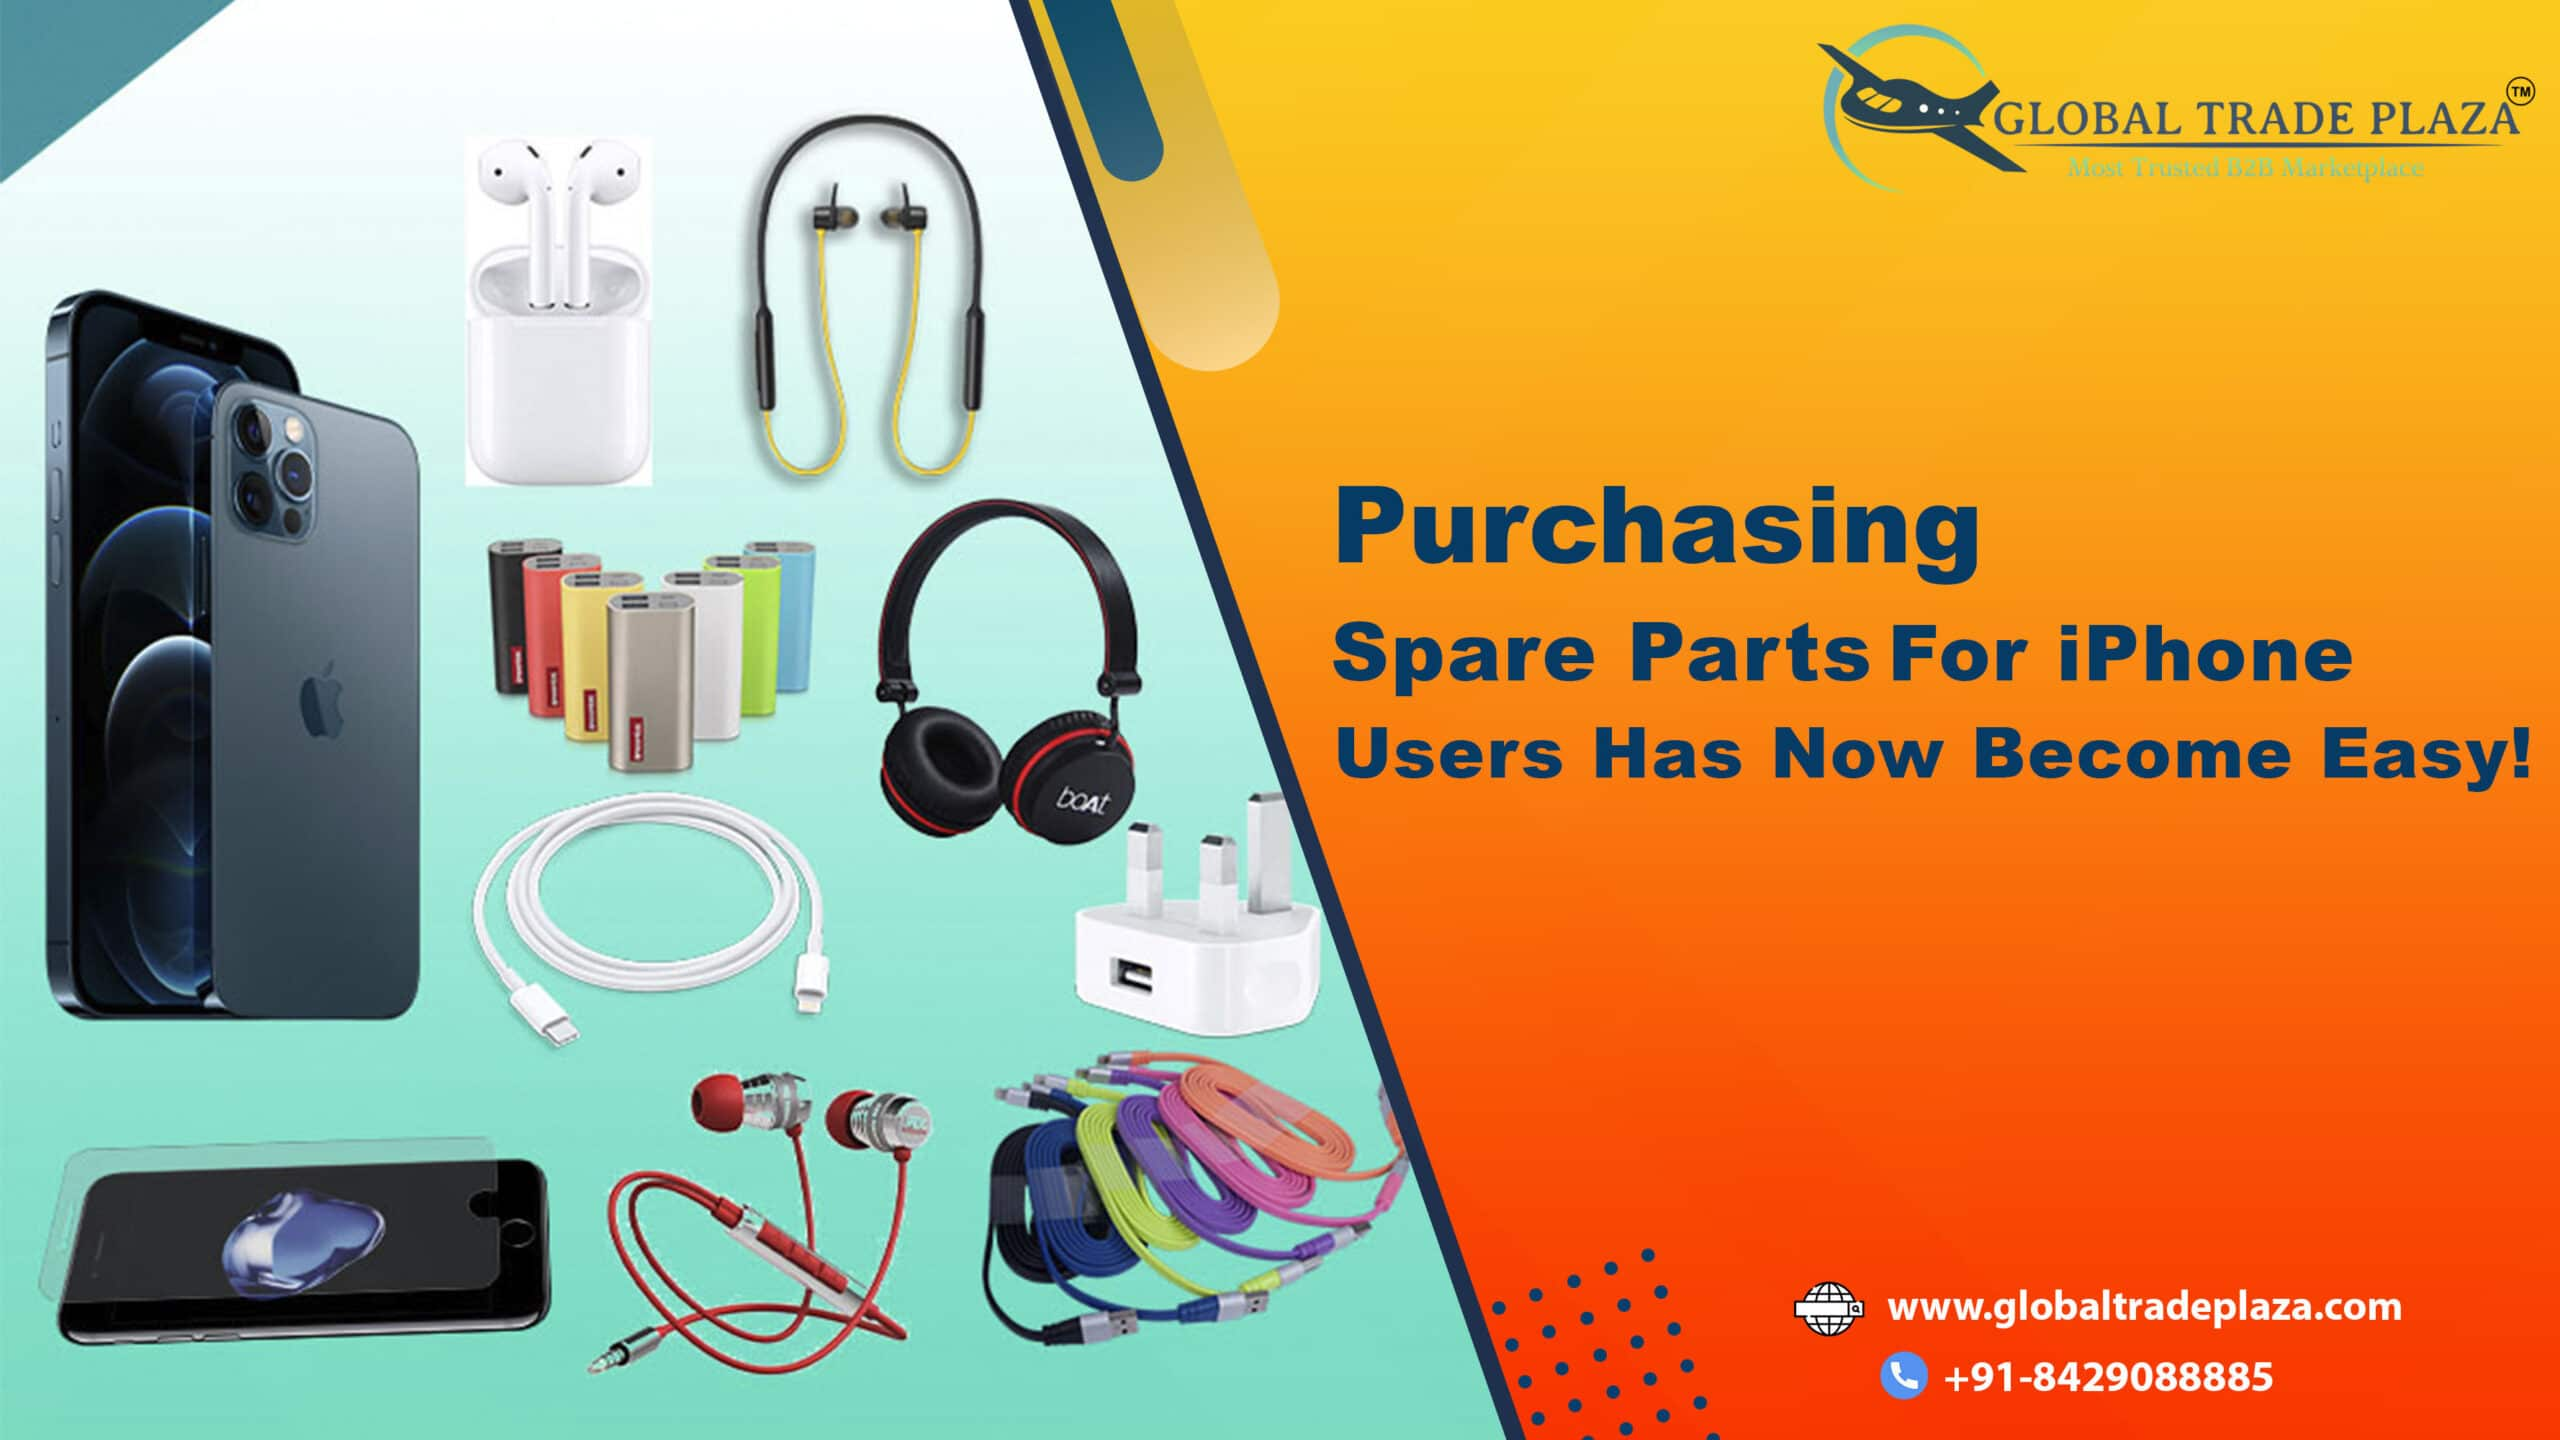 Purchasing Spare parts for iPhone